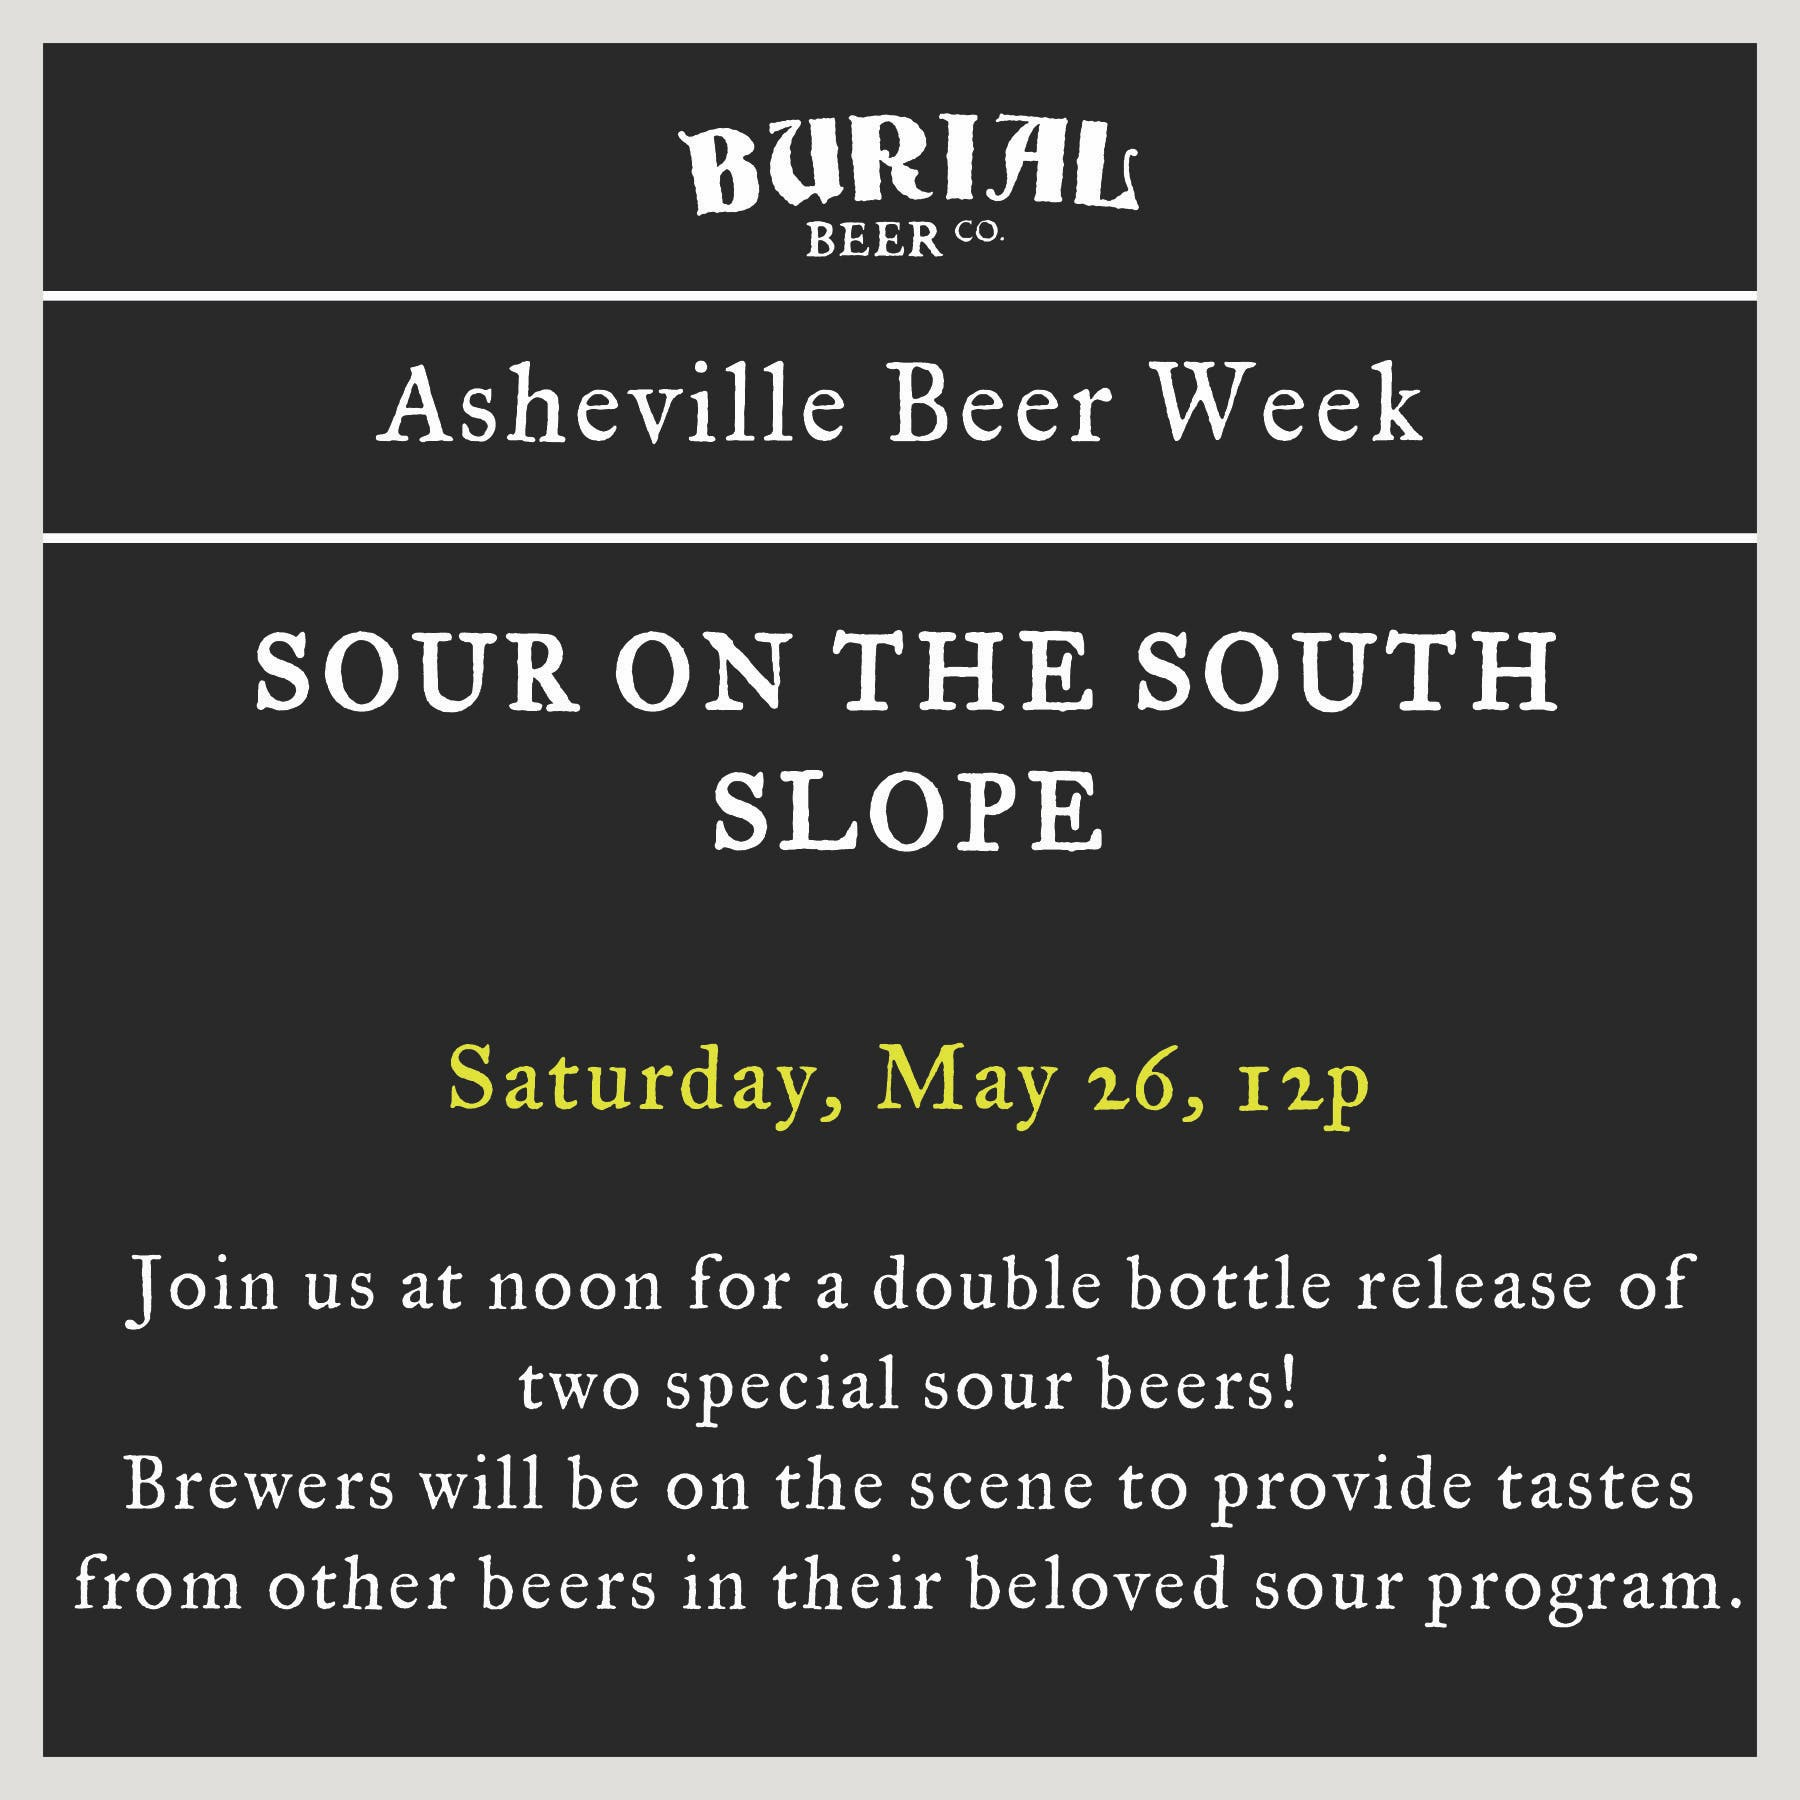 Sour on the South Slope @ Asheville Beer Week